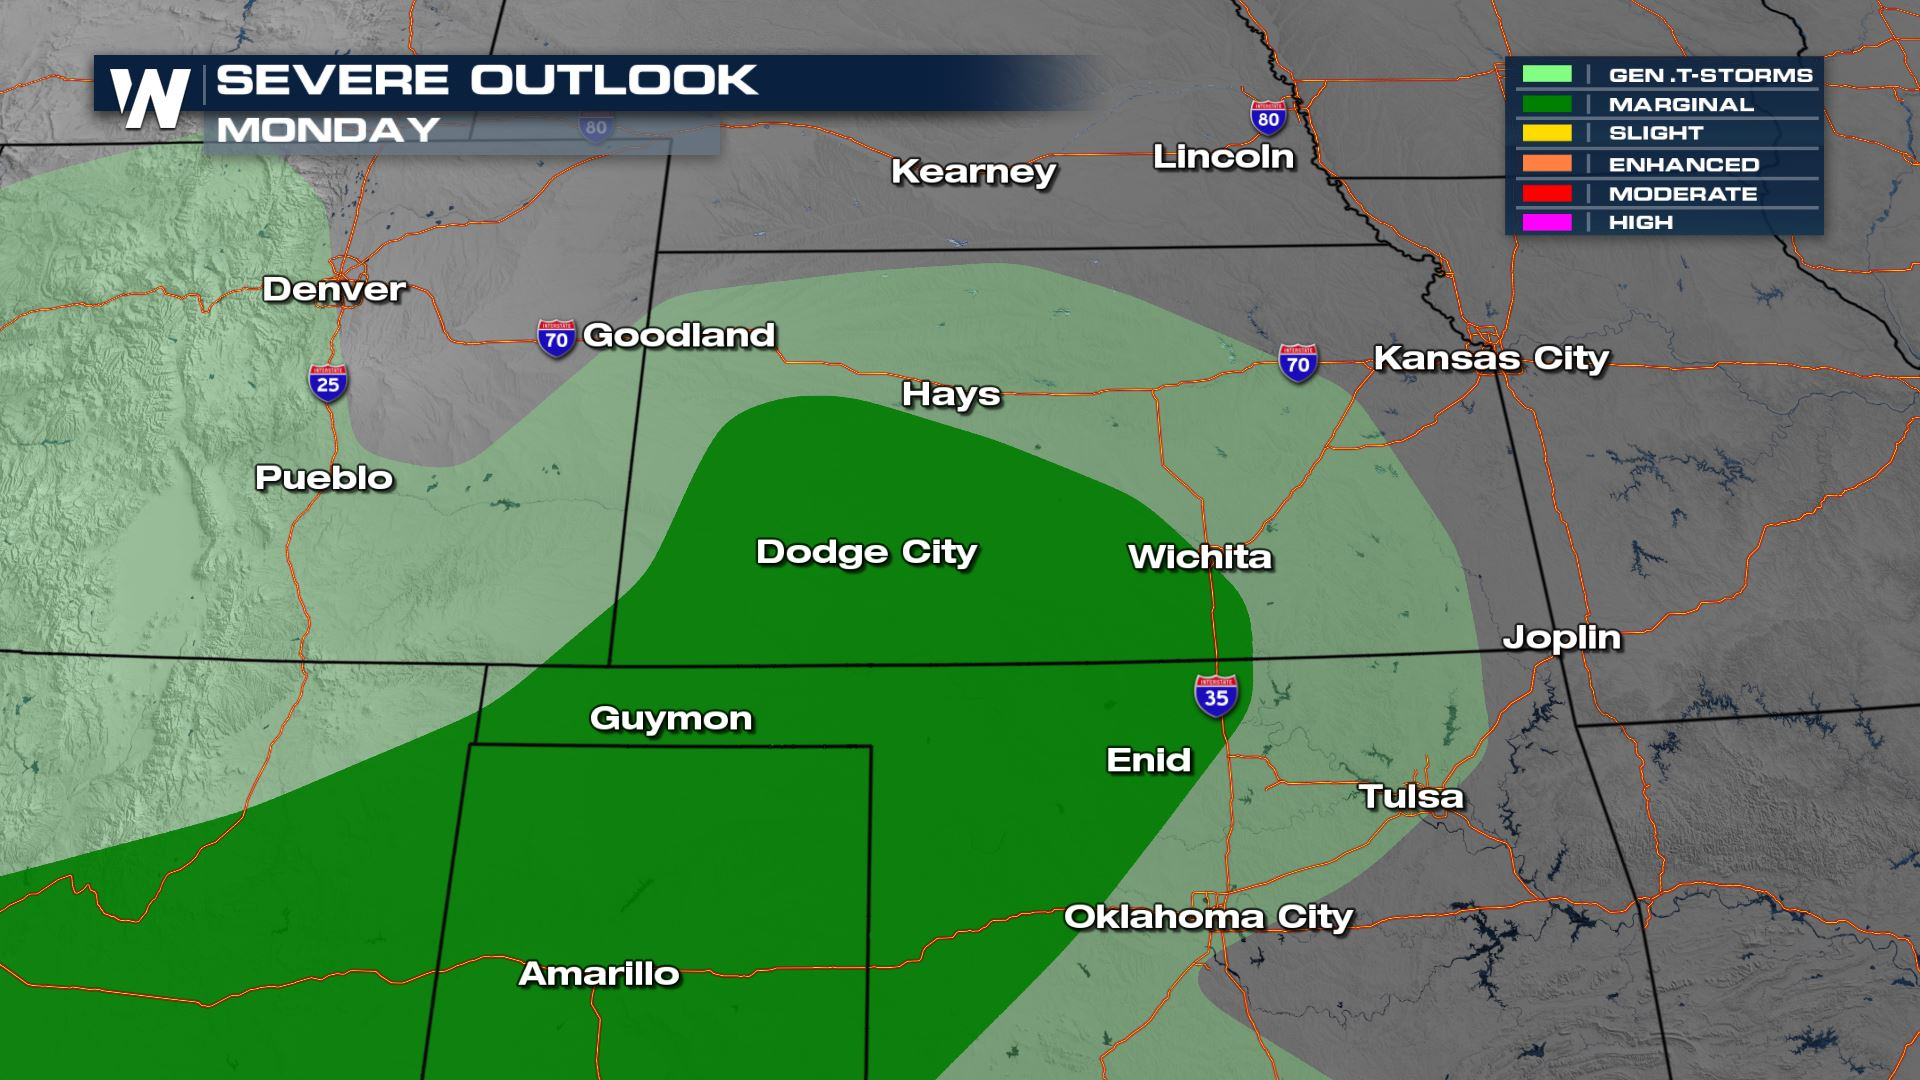 Isolated Severe Risk for the Central Plains Monday